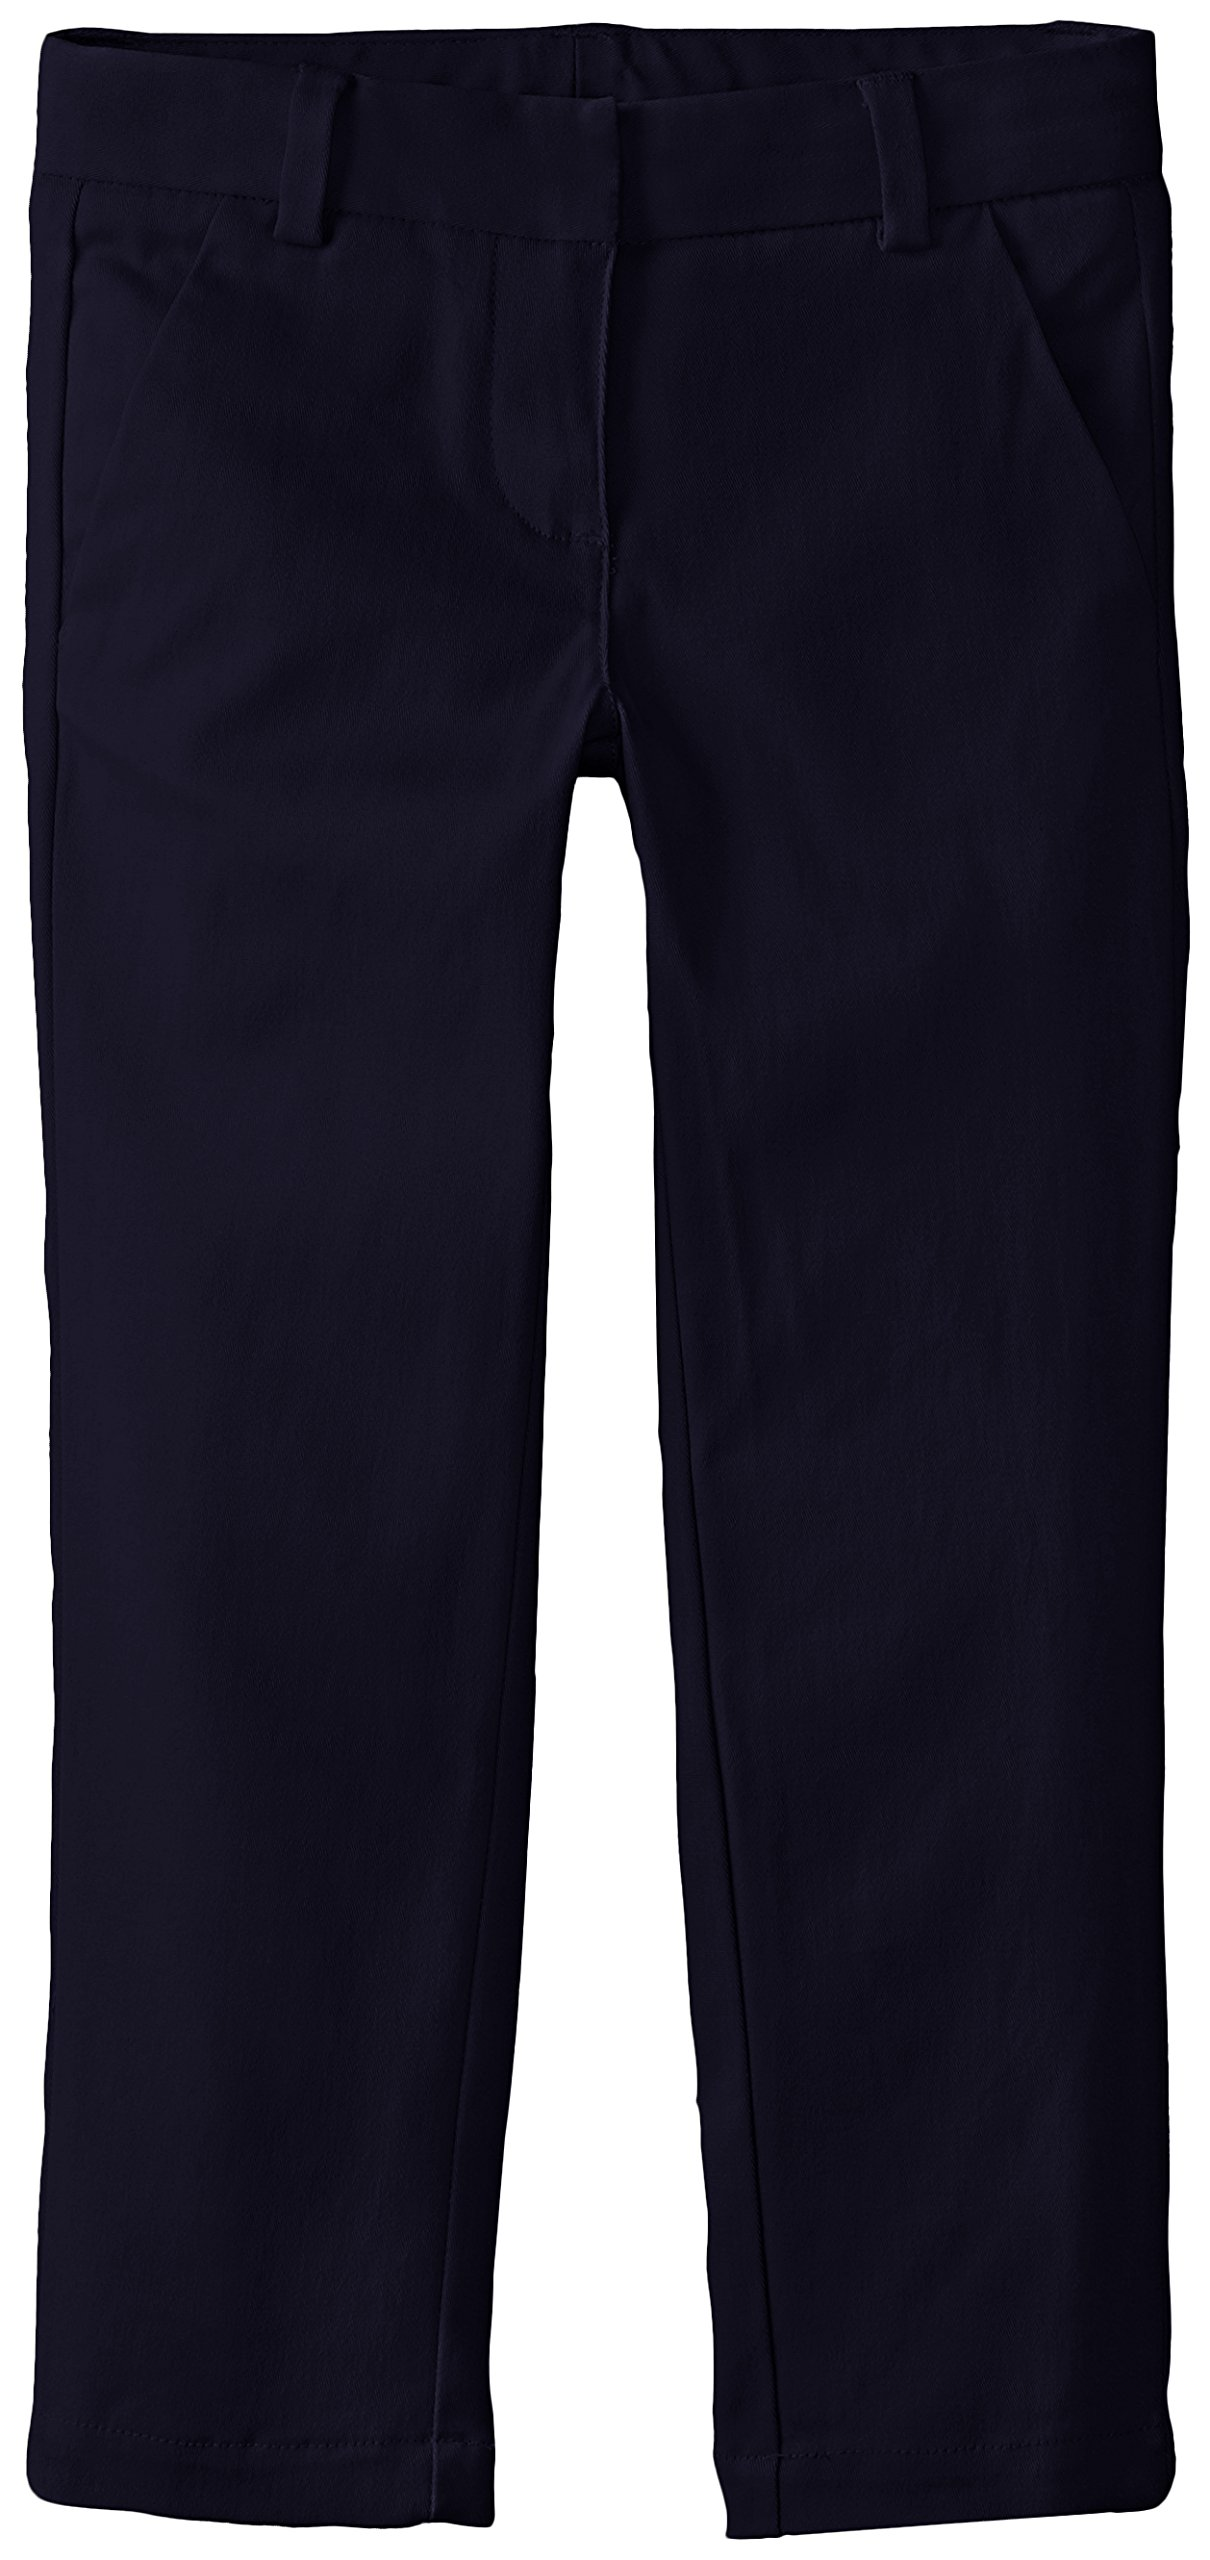 Nautica Little Girls' Uniform Stretch Twill Skinny Bootcut Pant with Waistband, Su Navy, 5